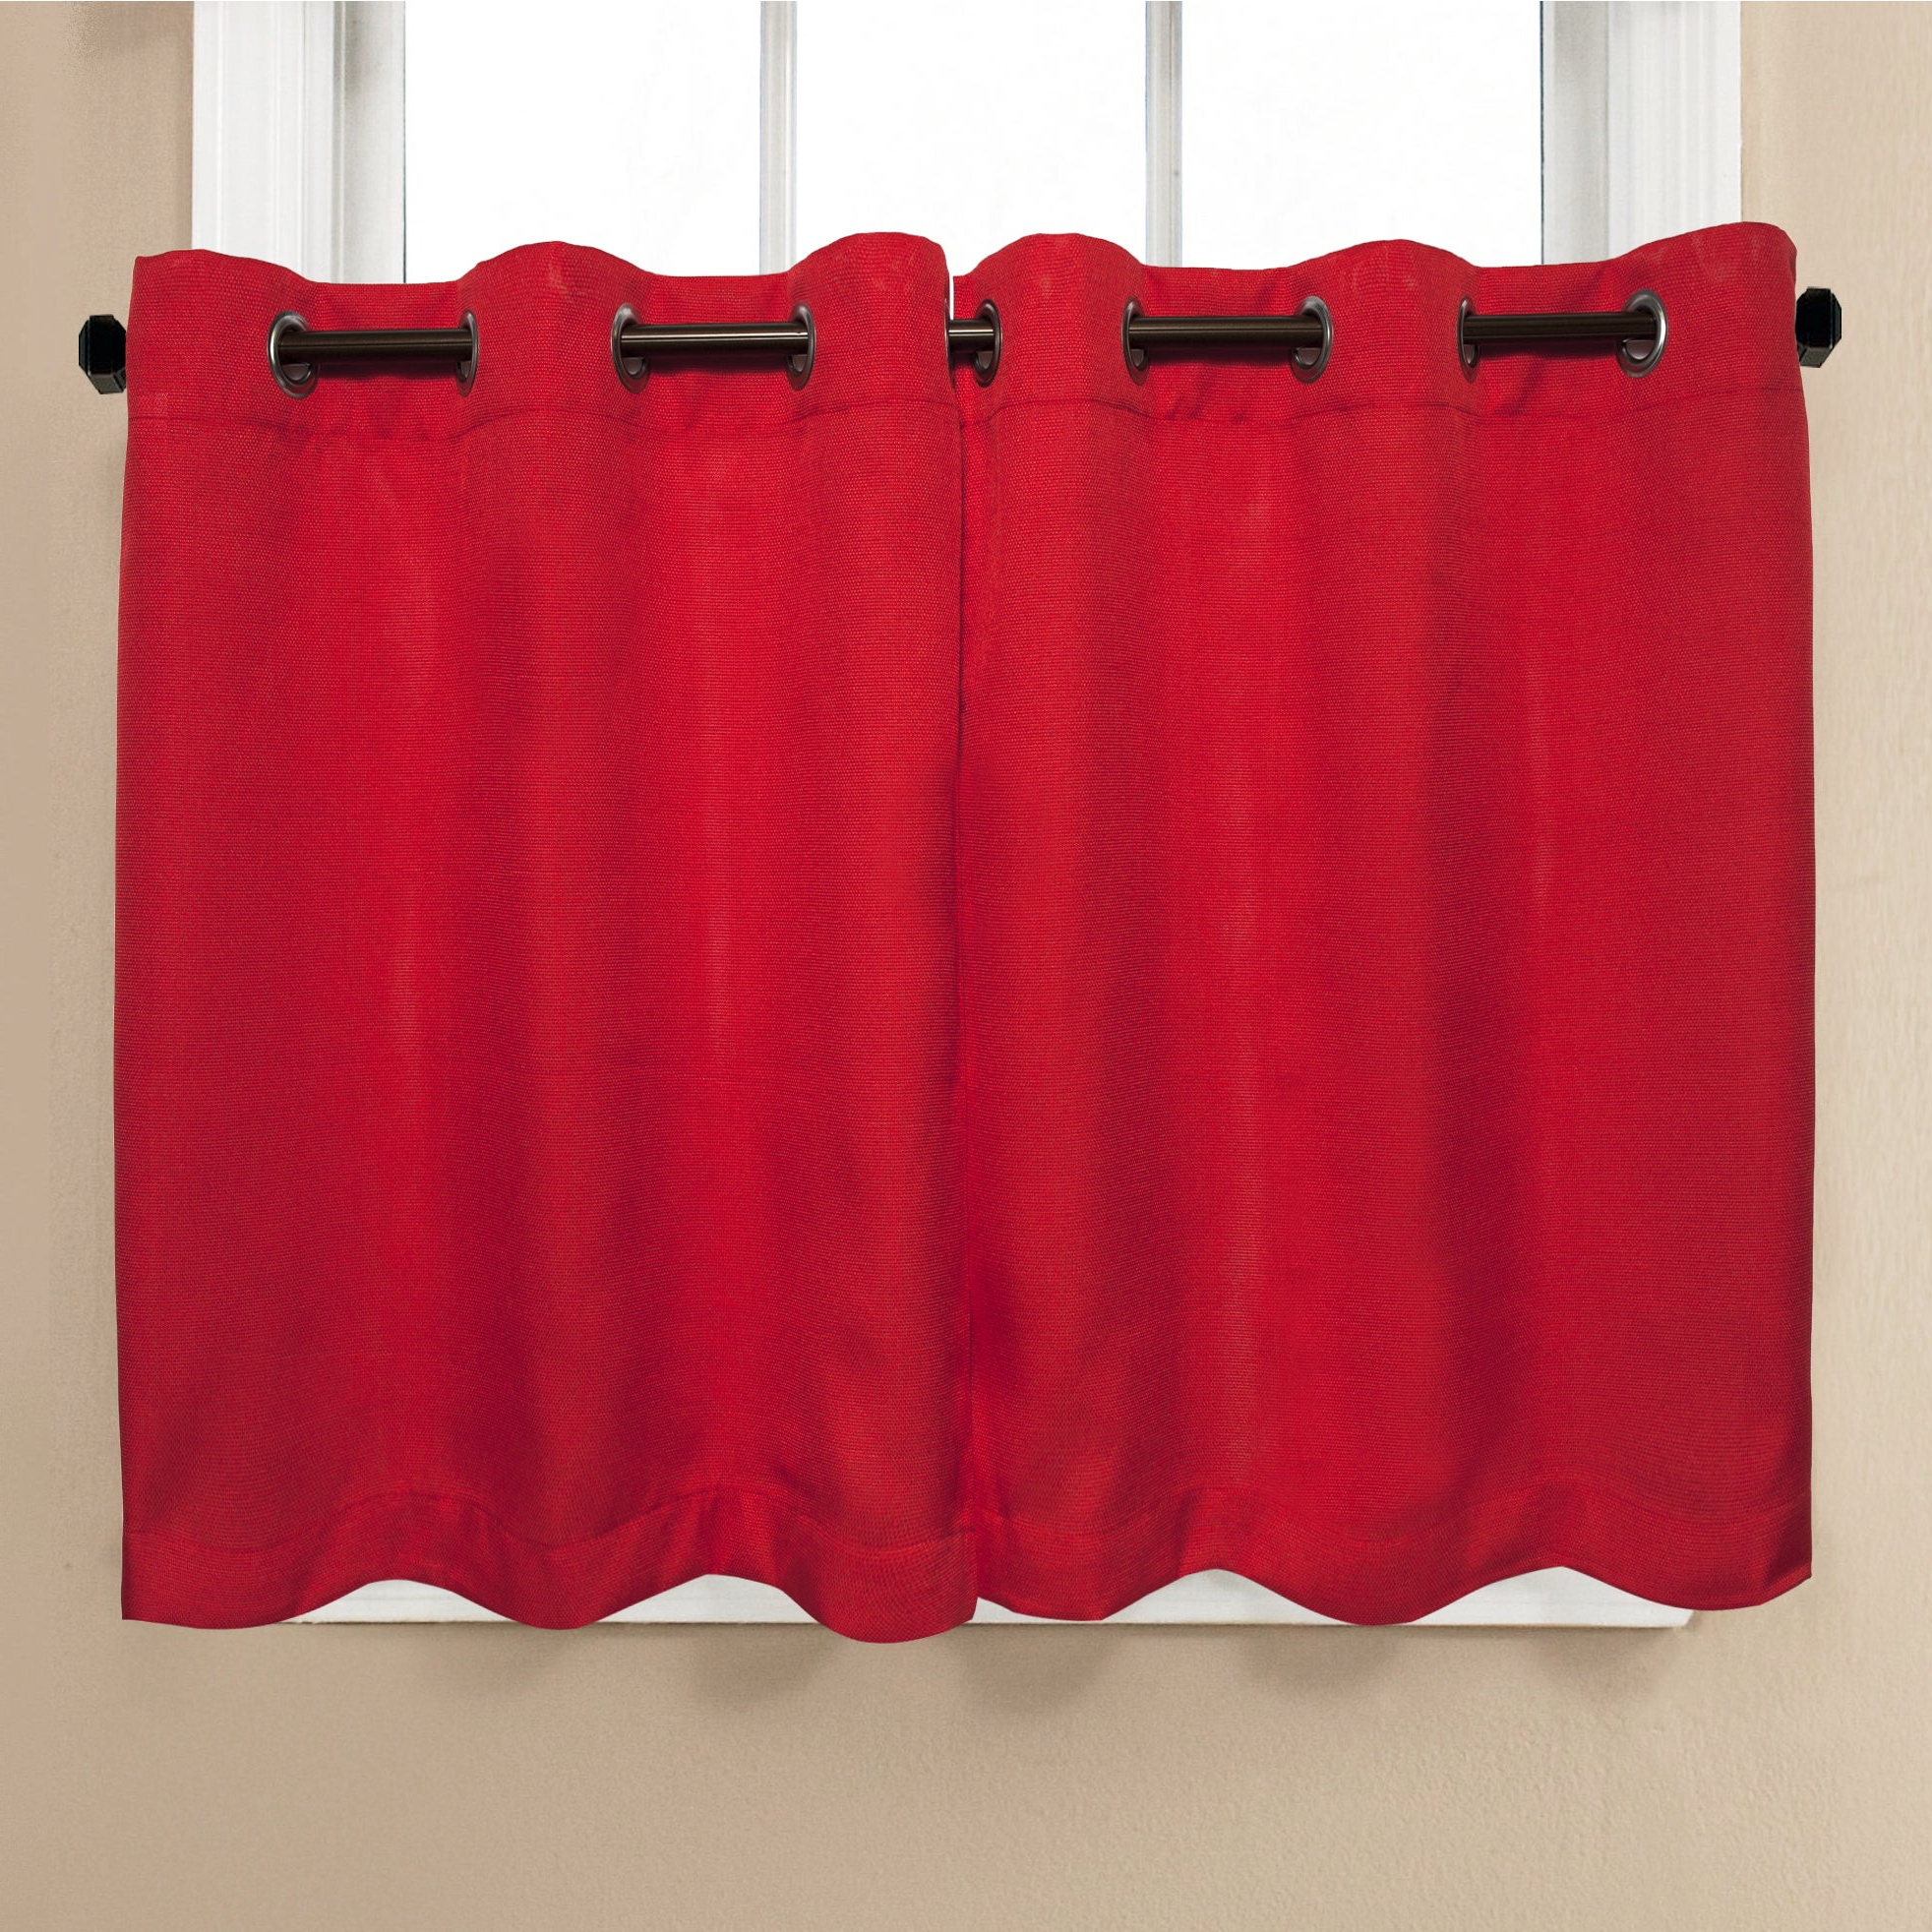 Modern Subtle Texture Solid Red Kitchen Curtains Throughout Most Up To Date Modern Subtle Texture Solid Red Kitchen Curtain Parts With Grommets Tier And Valance Options (Gallery 2 of 20)